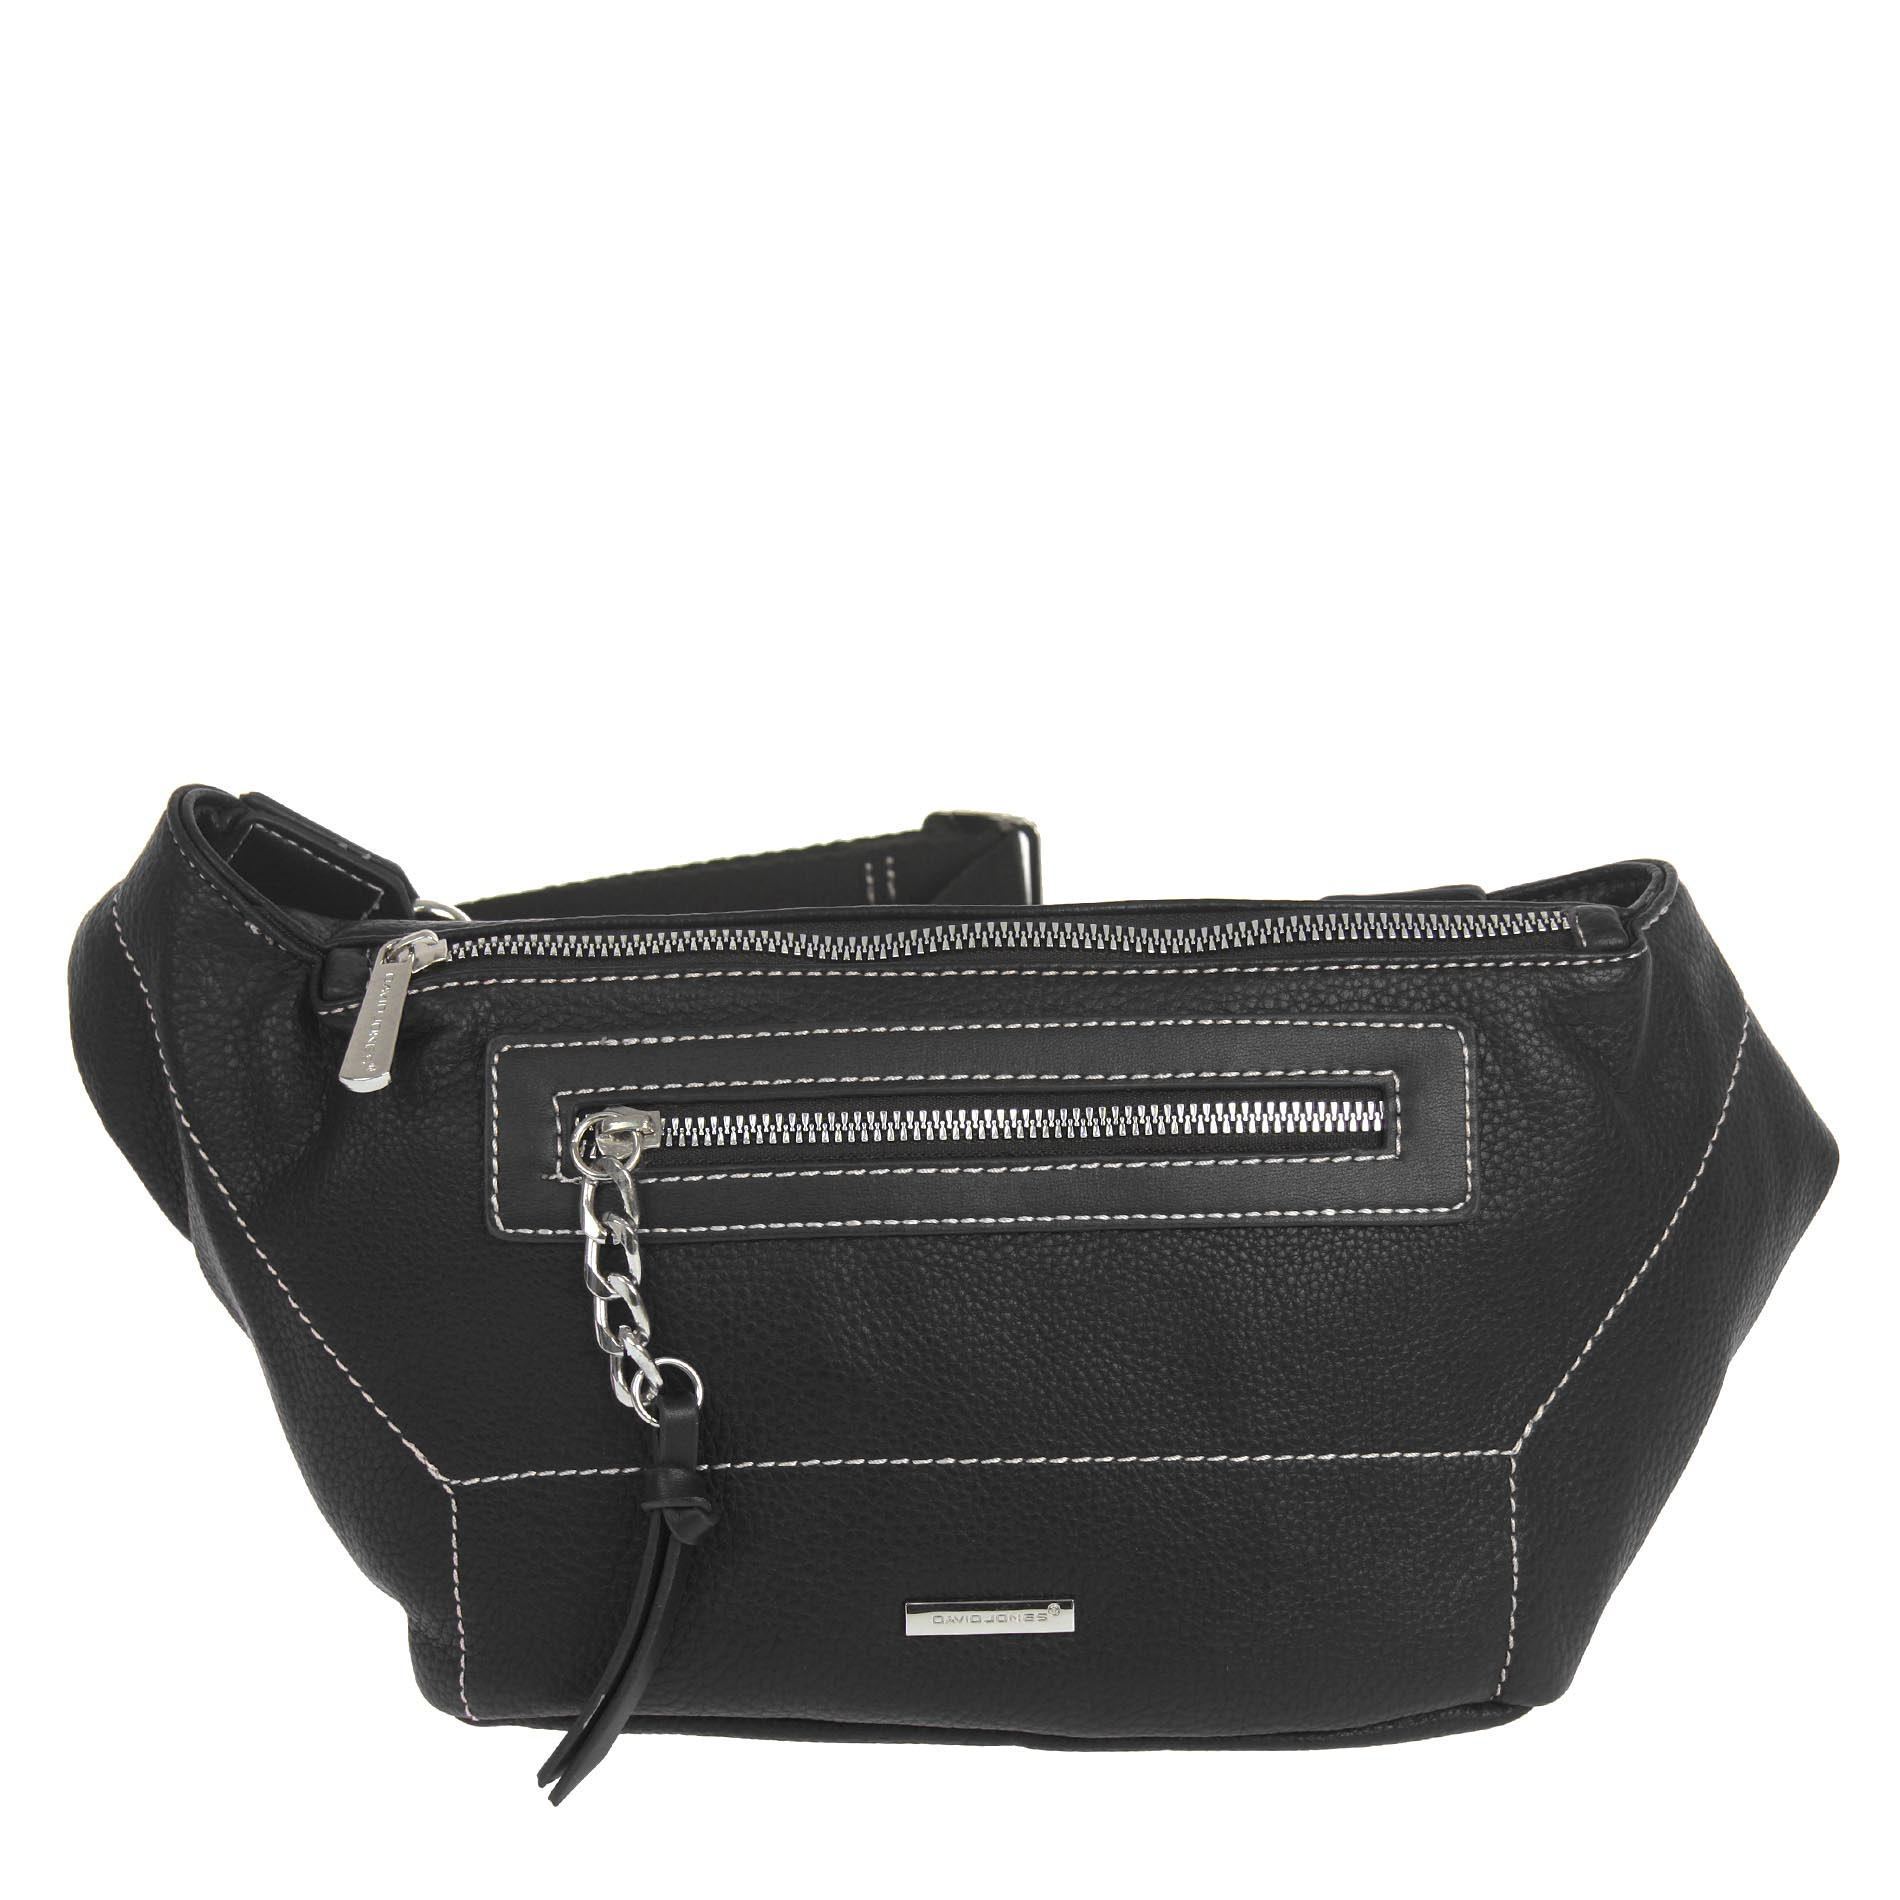 Bedrová kapsička David Jones CM-5407-black